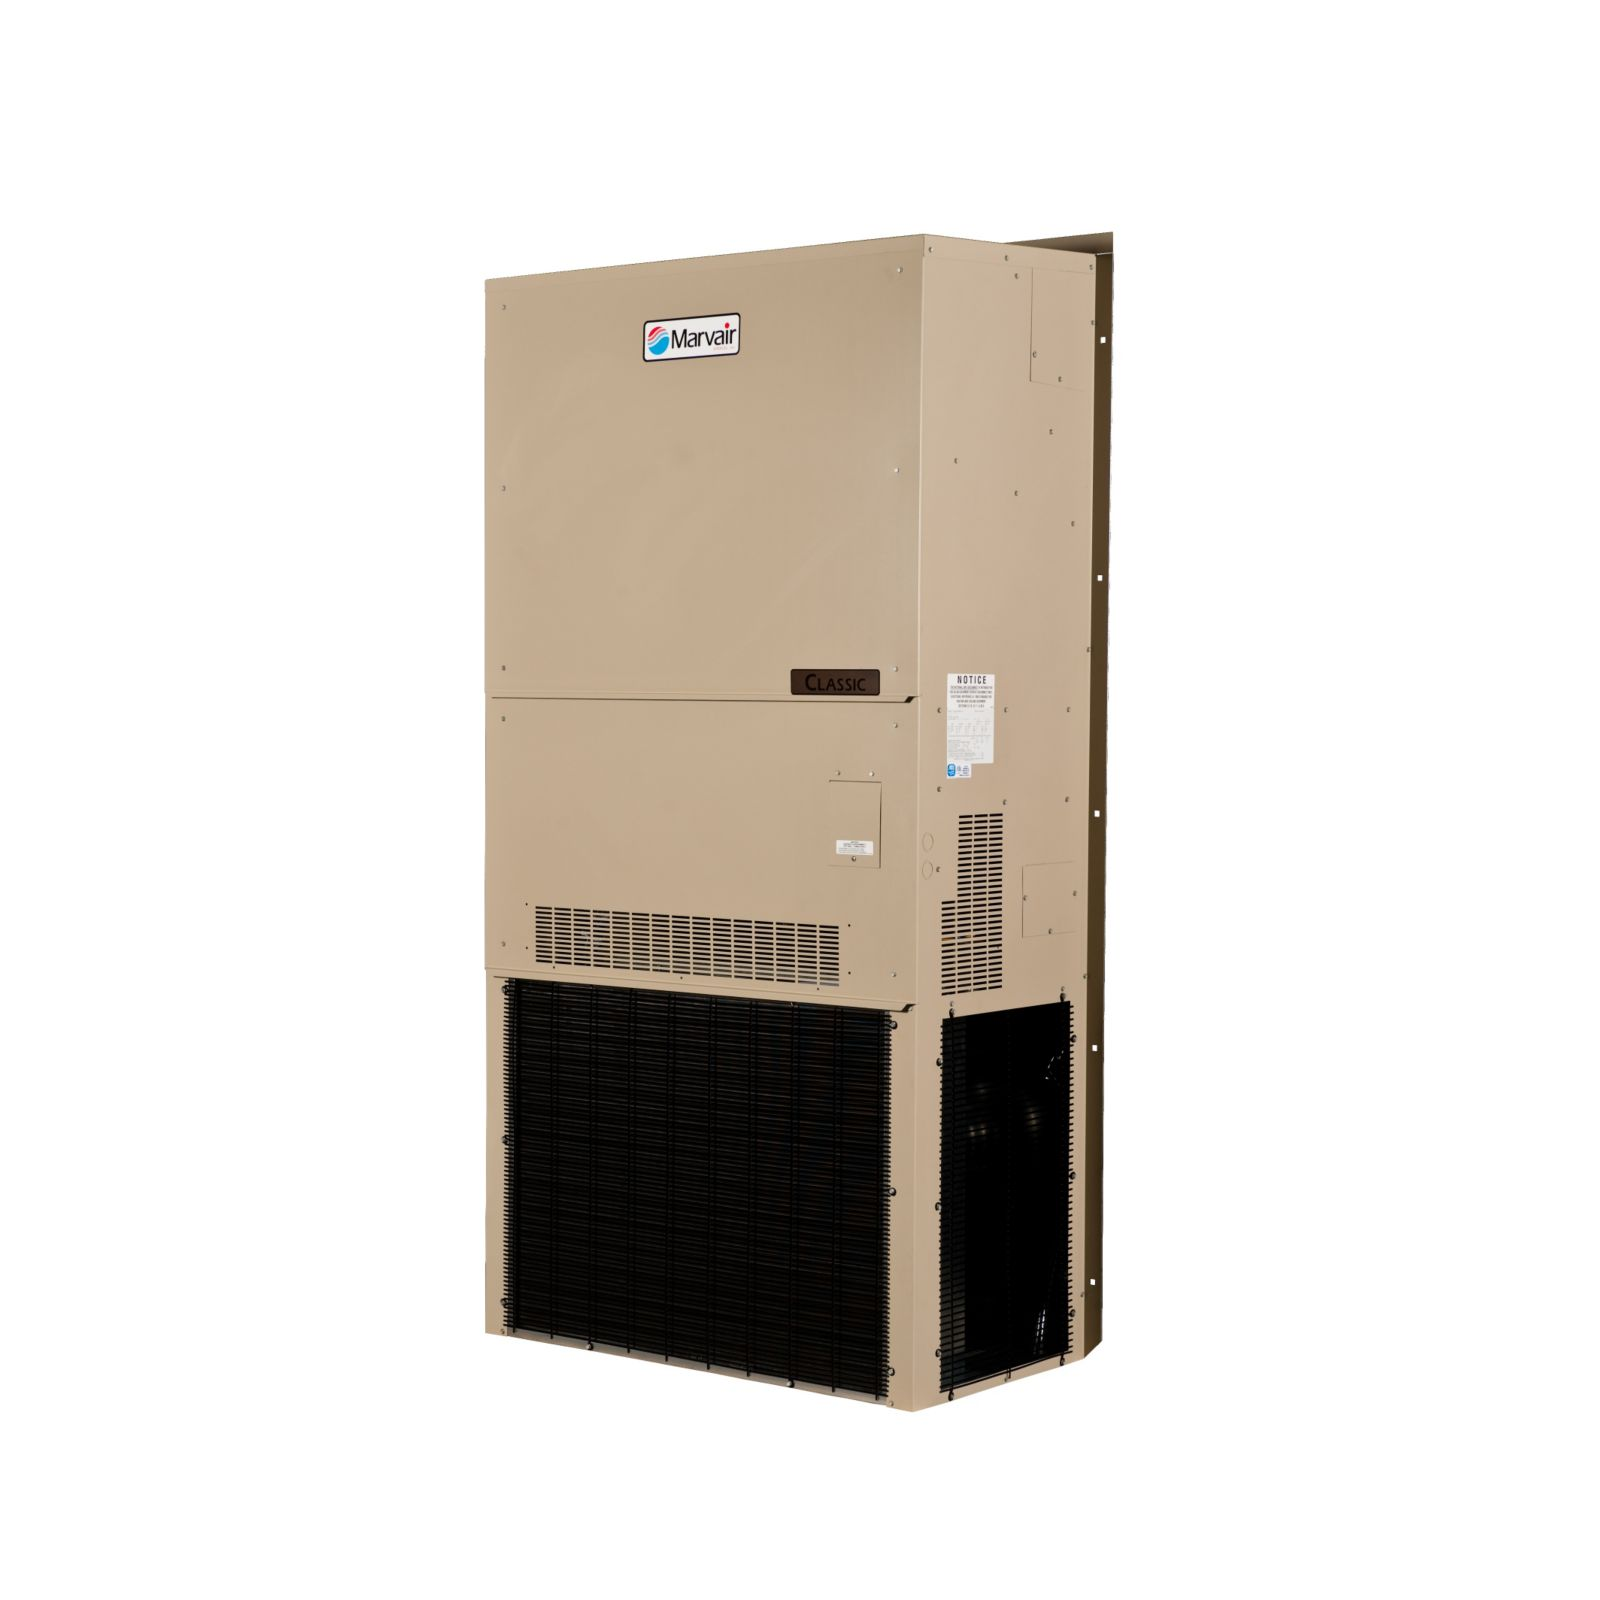 Marvair AVPA60ACA000M5U-A2-100 - Wall Mount AC ModPac 5 Ton, 208-230/1, No Heat, Manual Damper, Scroll Compressor